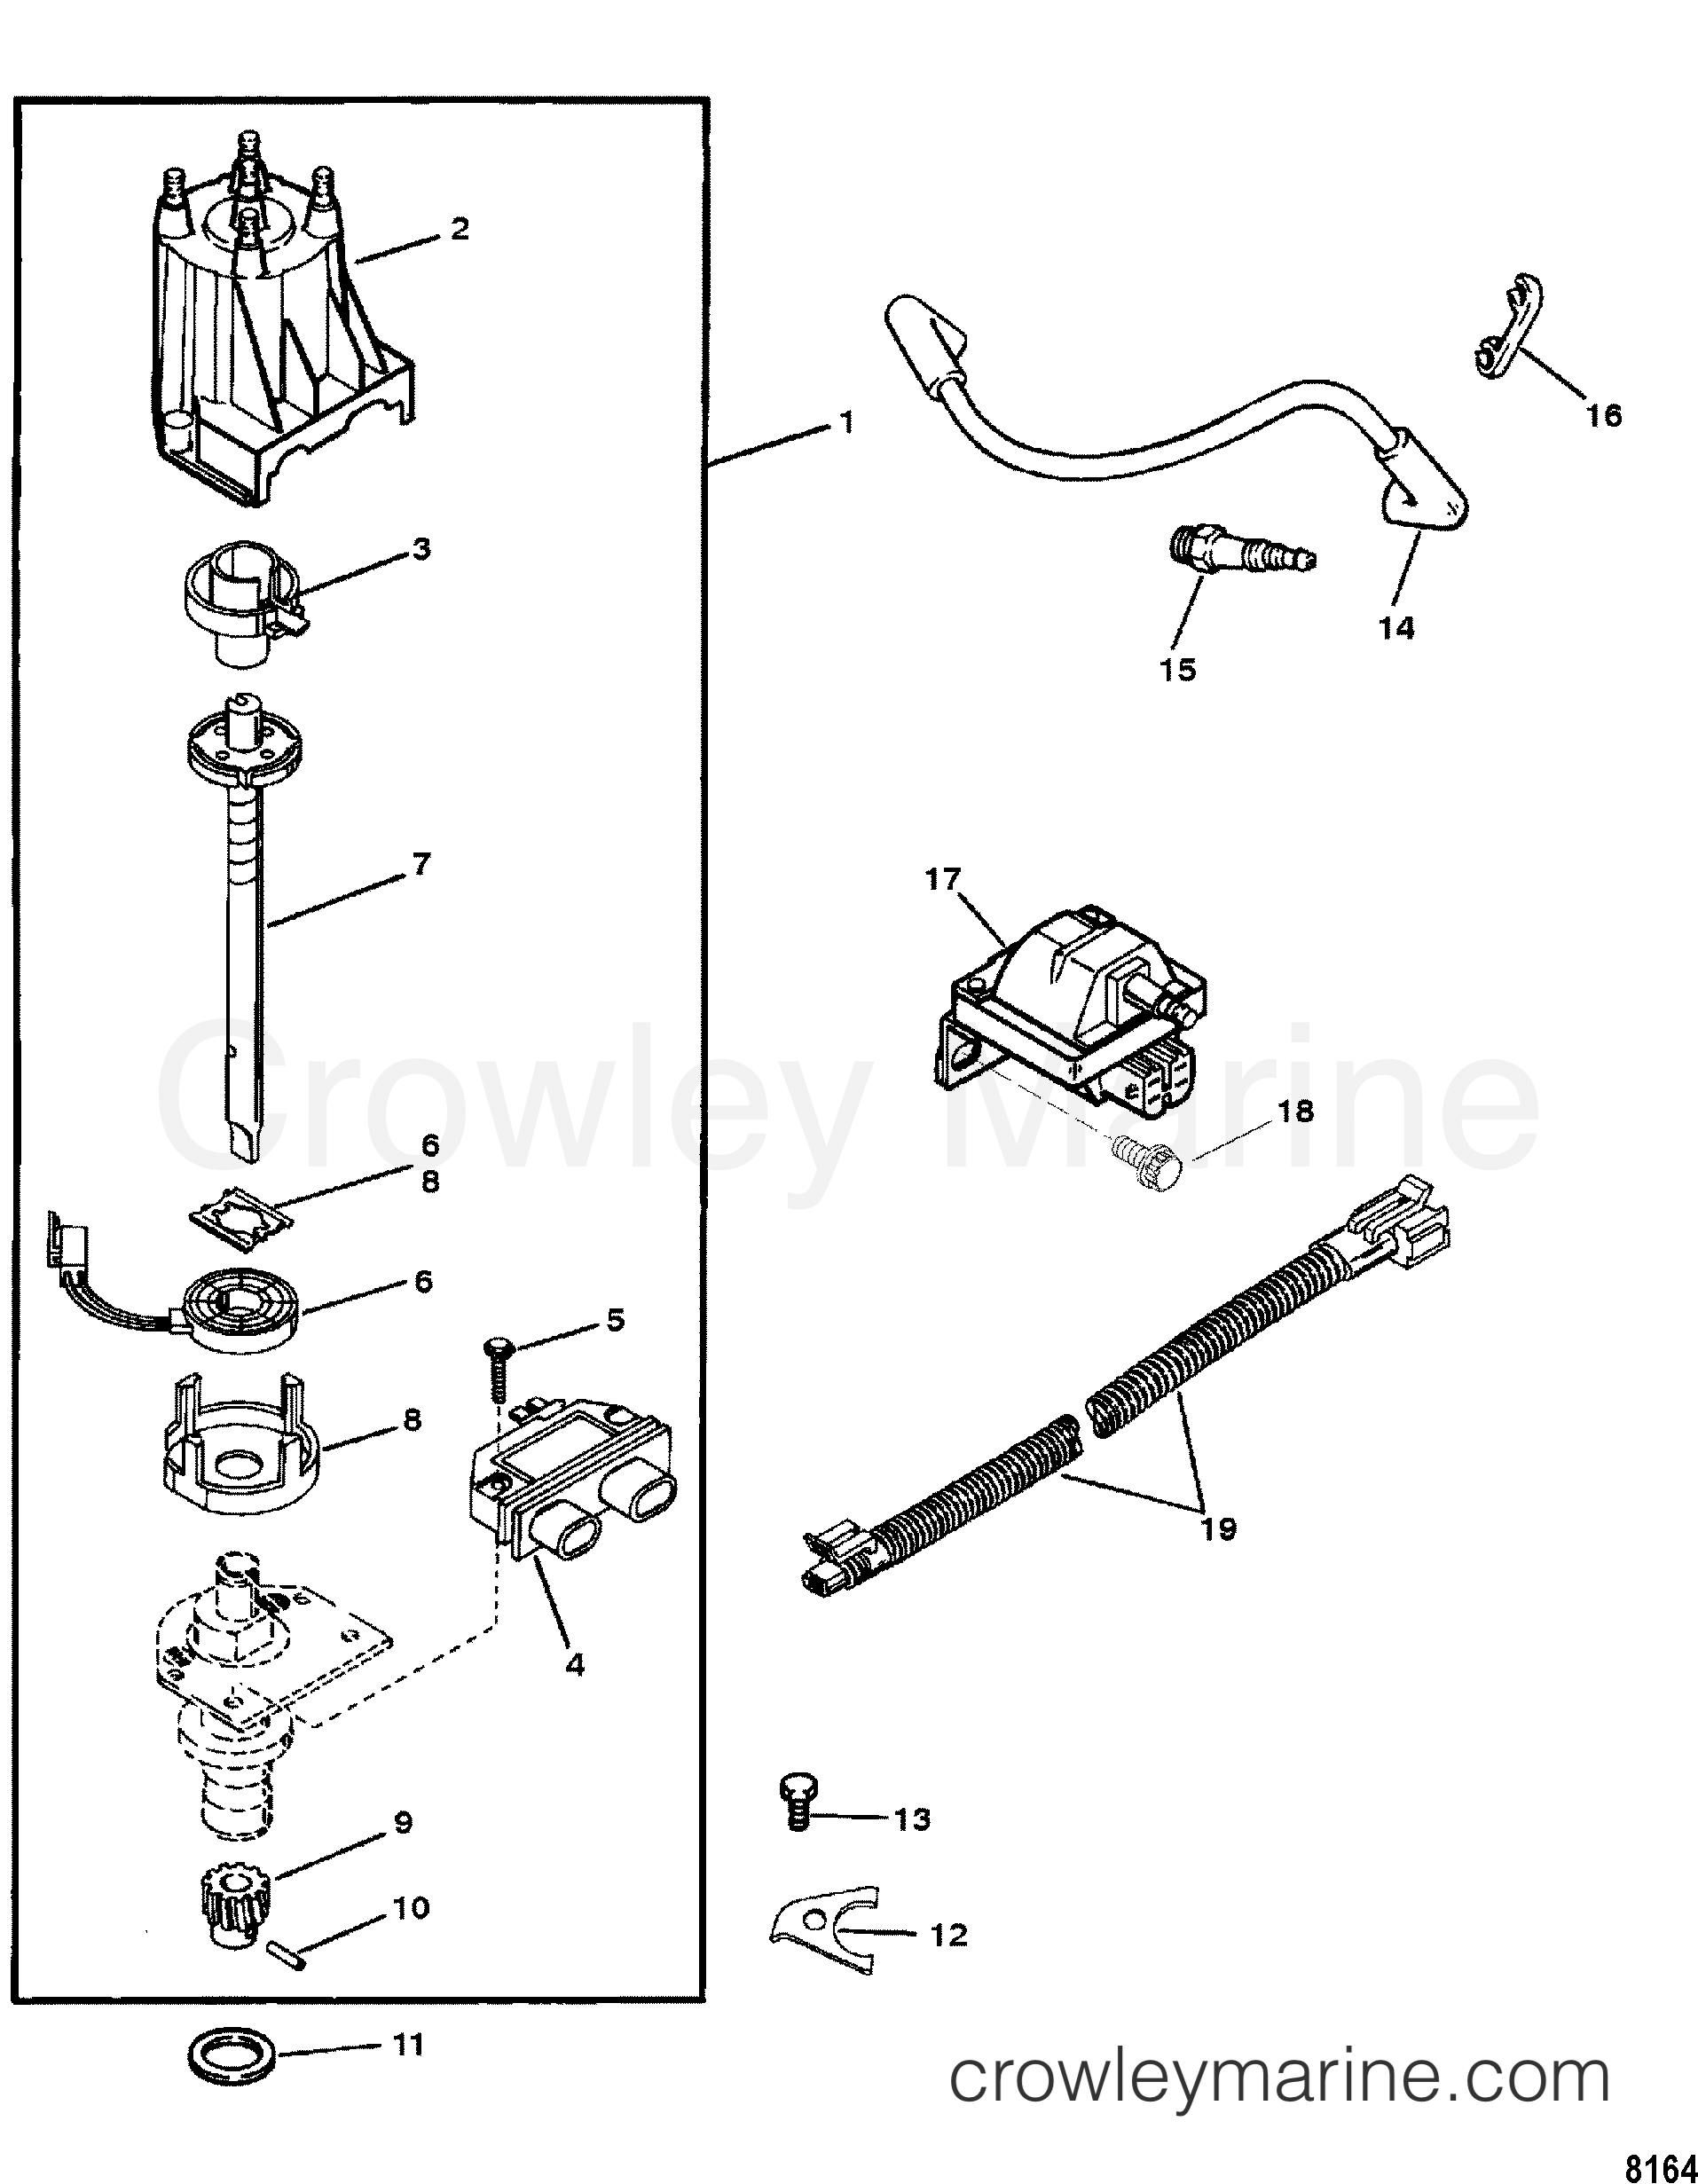 3.0 Mercruiser Ignition Coil Wiring Diagram from cdn.crowleymarine.com